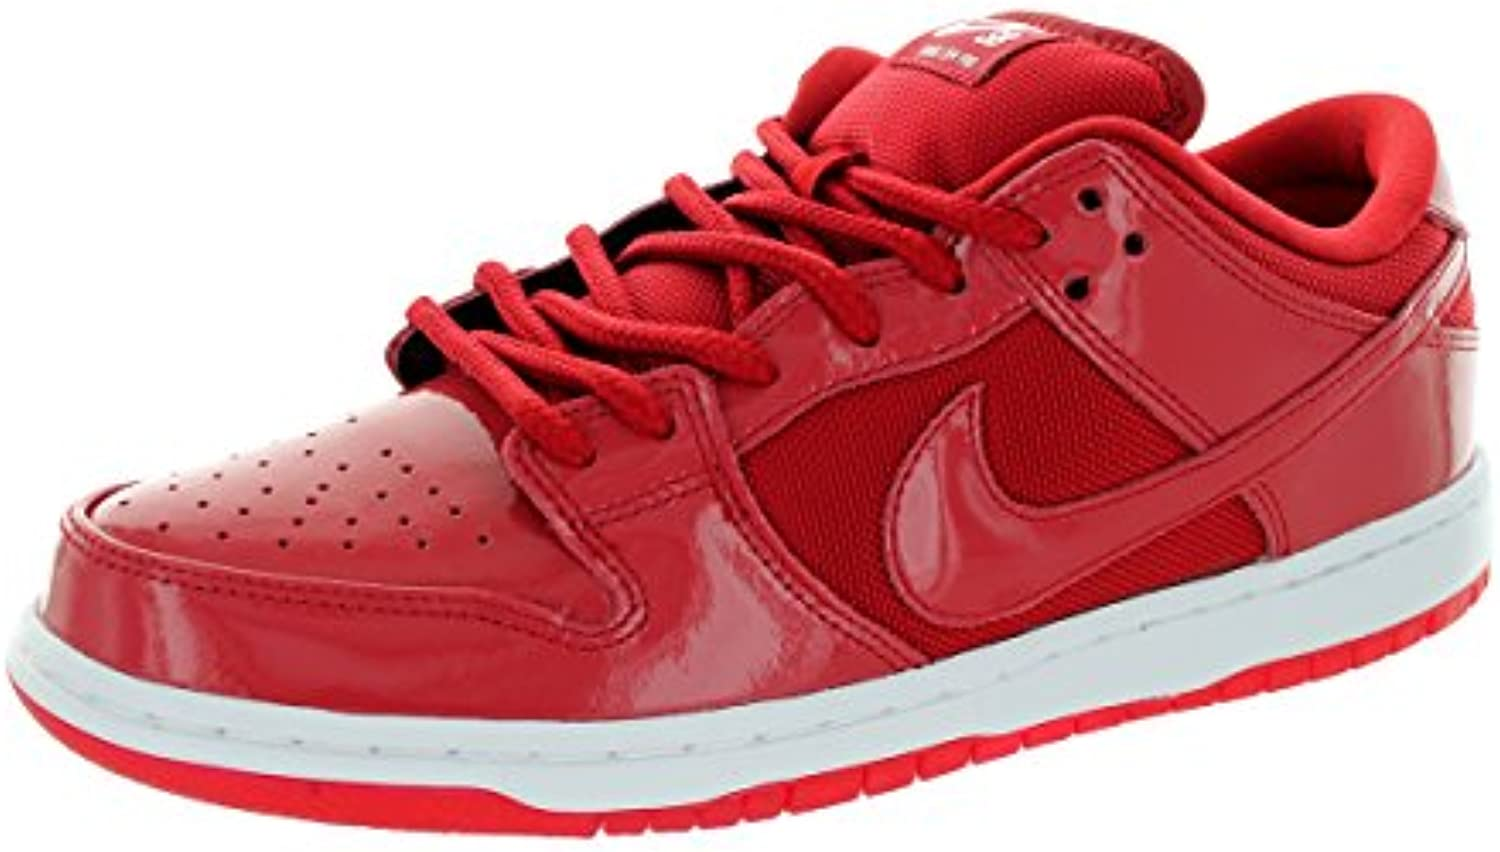 NIKE DUNK LOW PRO SB 'RED SPACE JAM'   304292 616